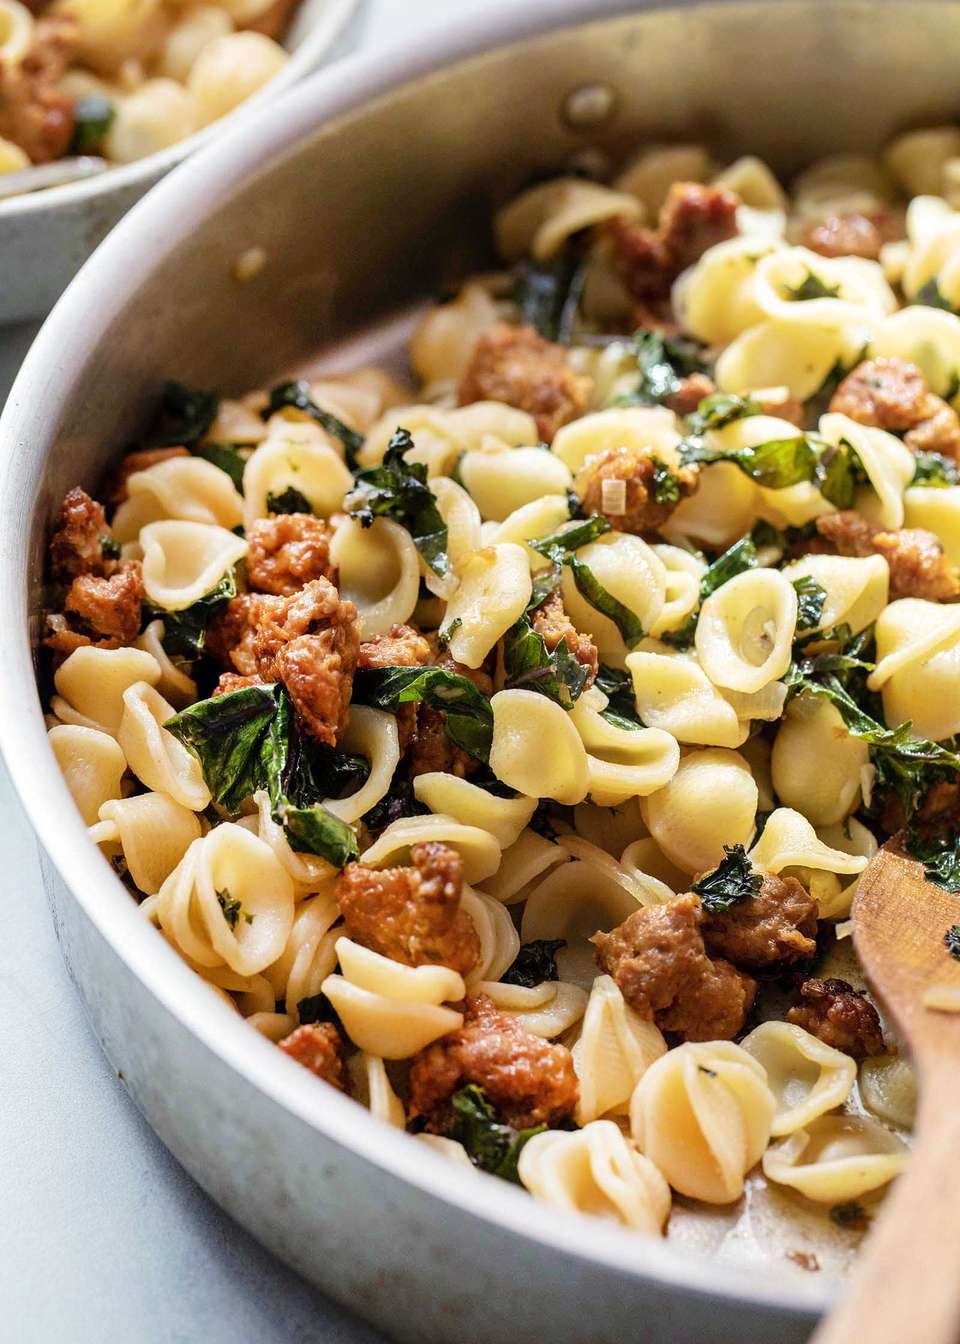 Sausage and Kale with Pasta Dinner recipe